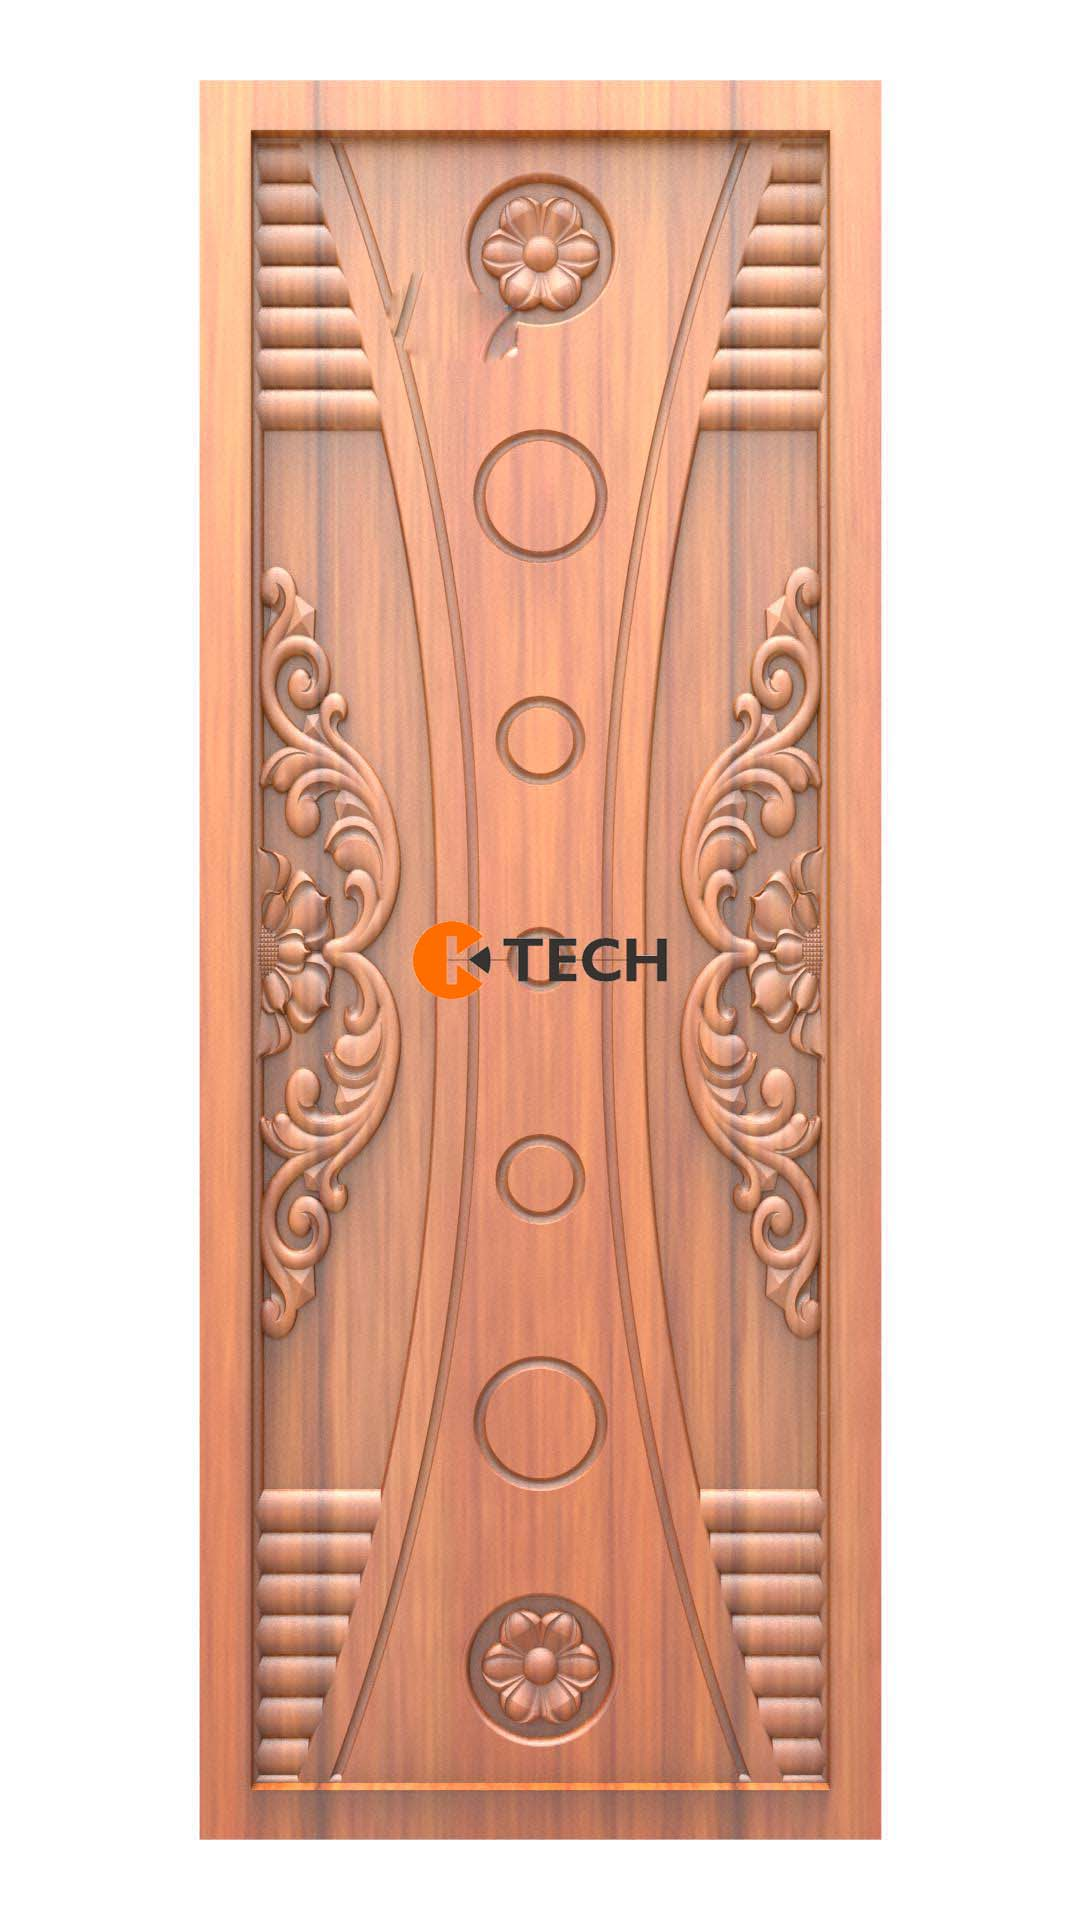 K-TECH CNC Doors Design 60